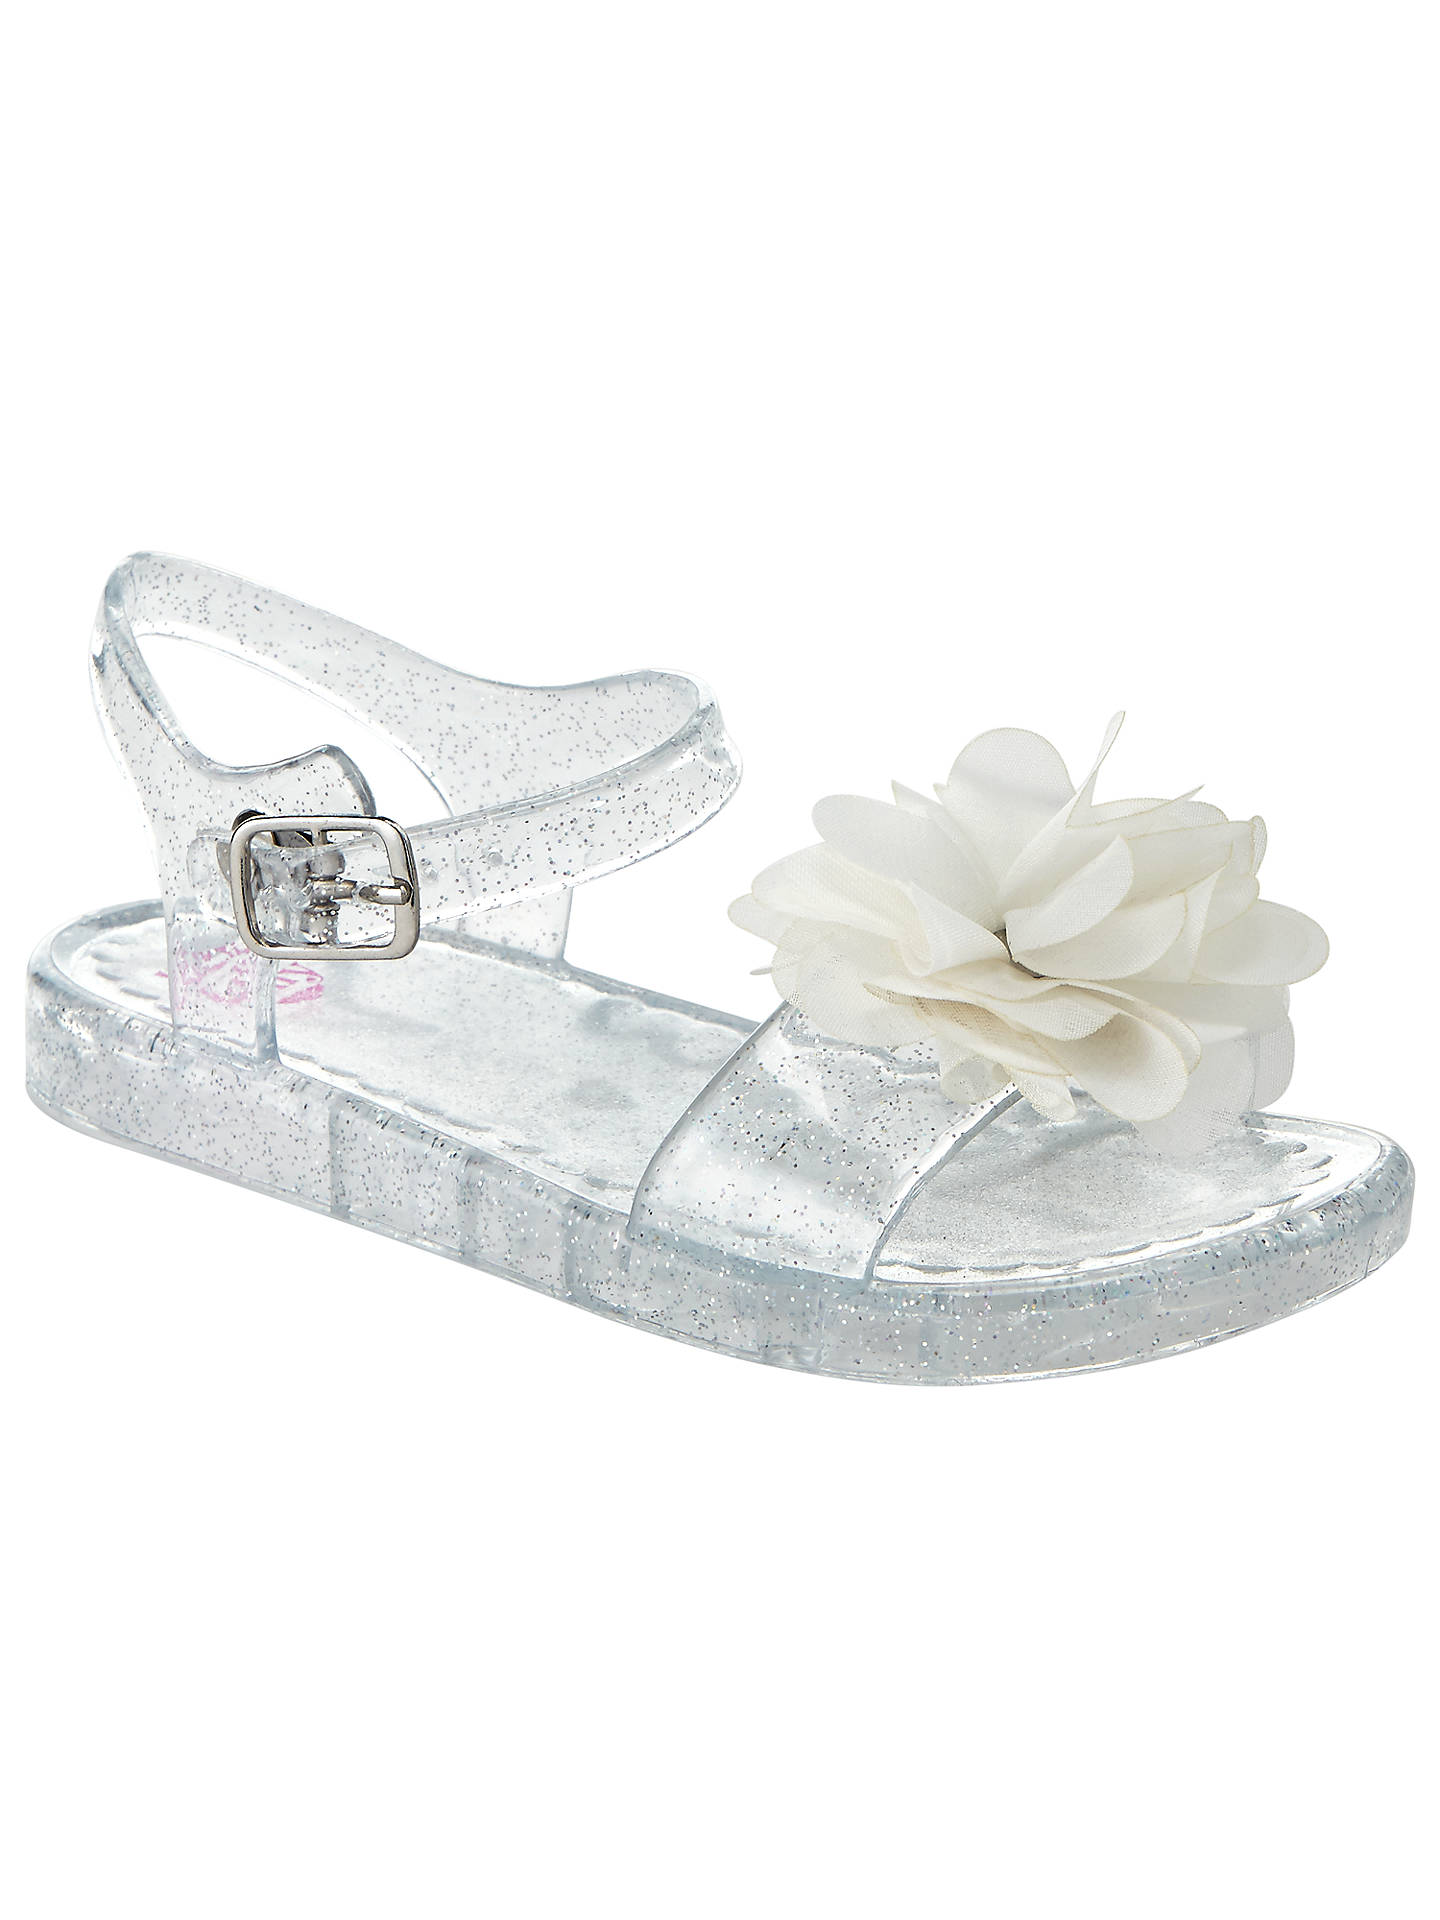 73b0aa5f237 Lelli Kelly Children s Fiore Jelly Sandals at John Lewis   Partners